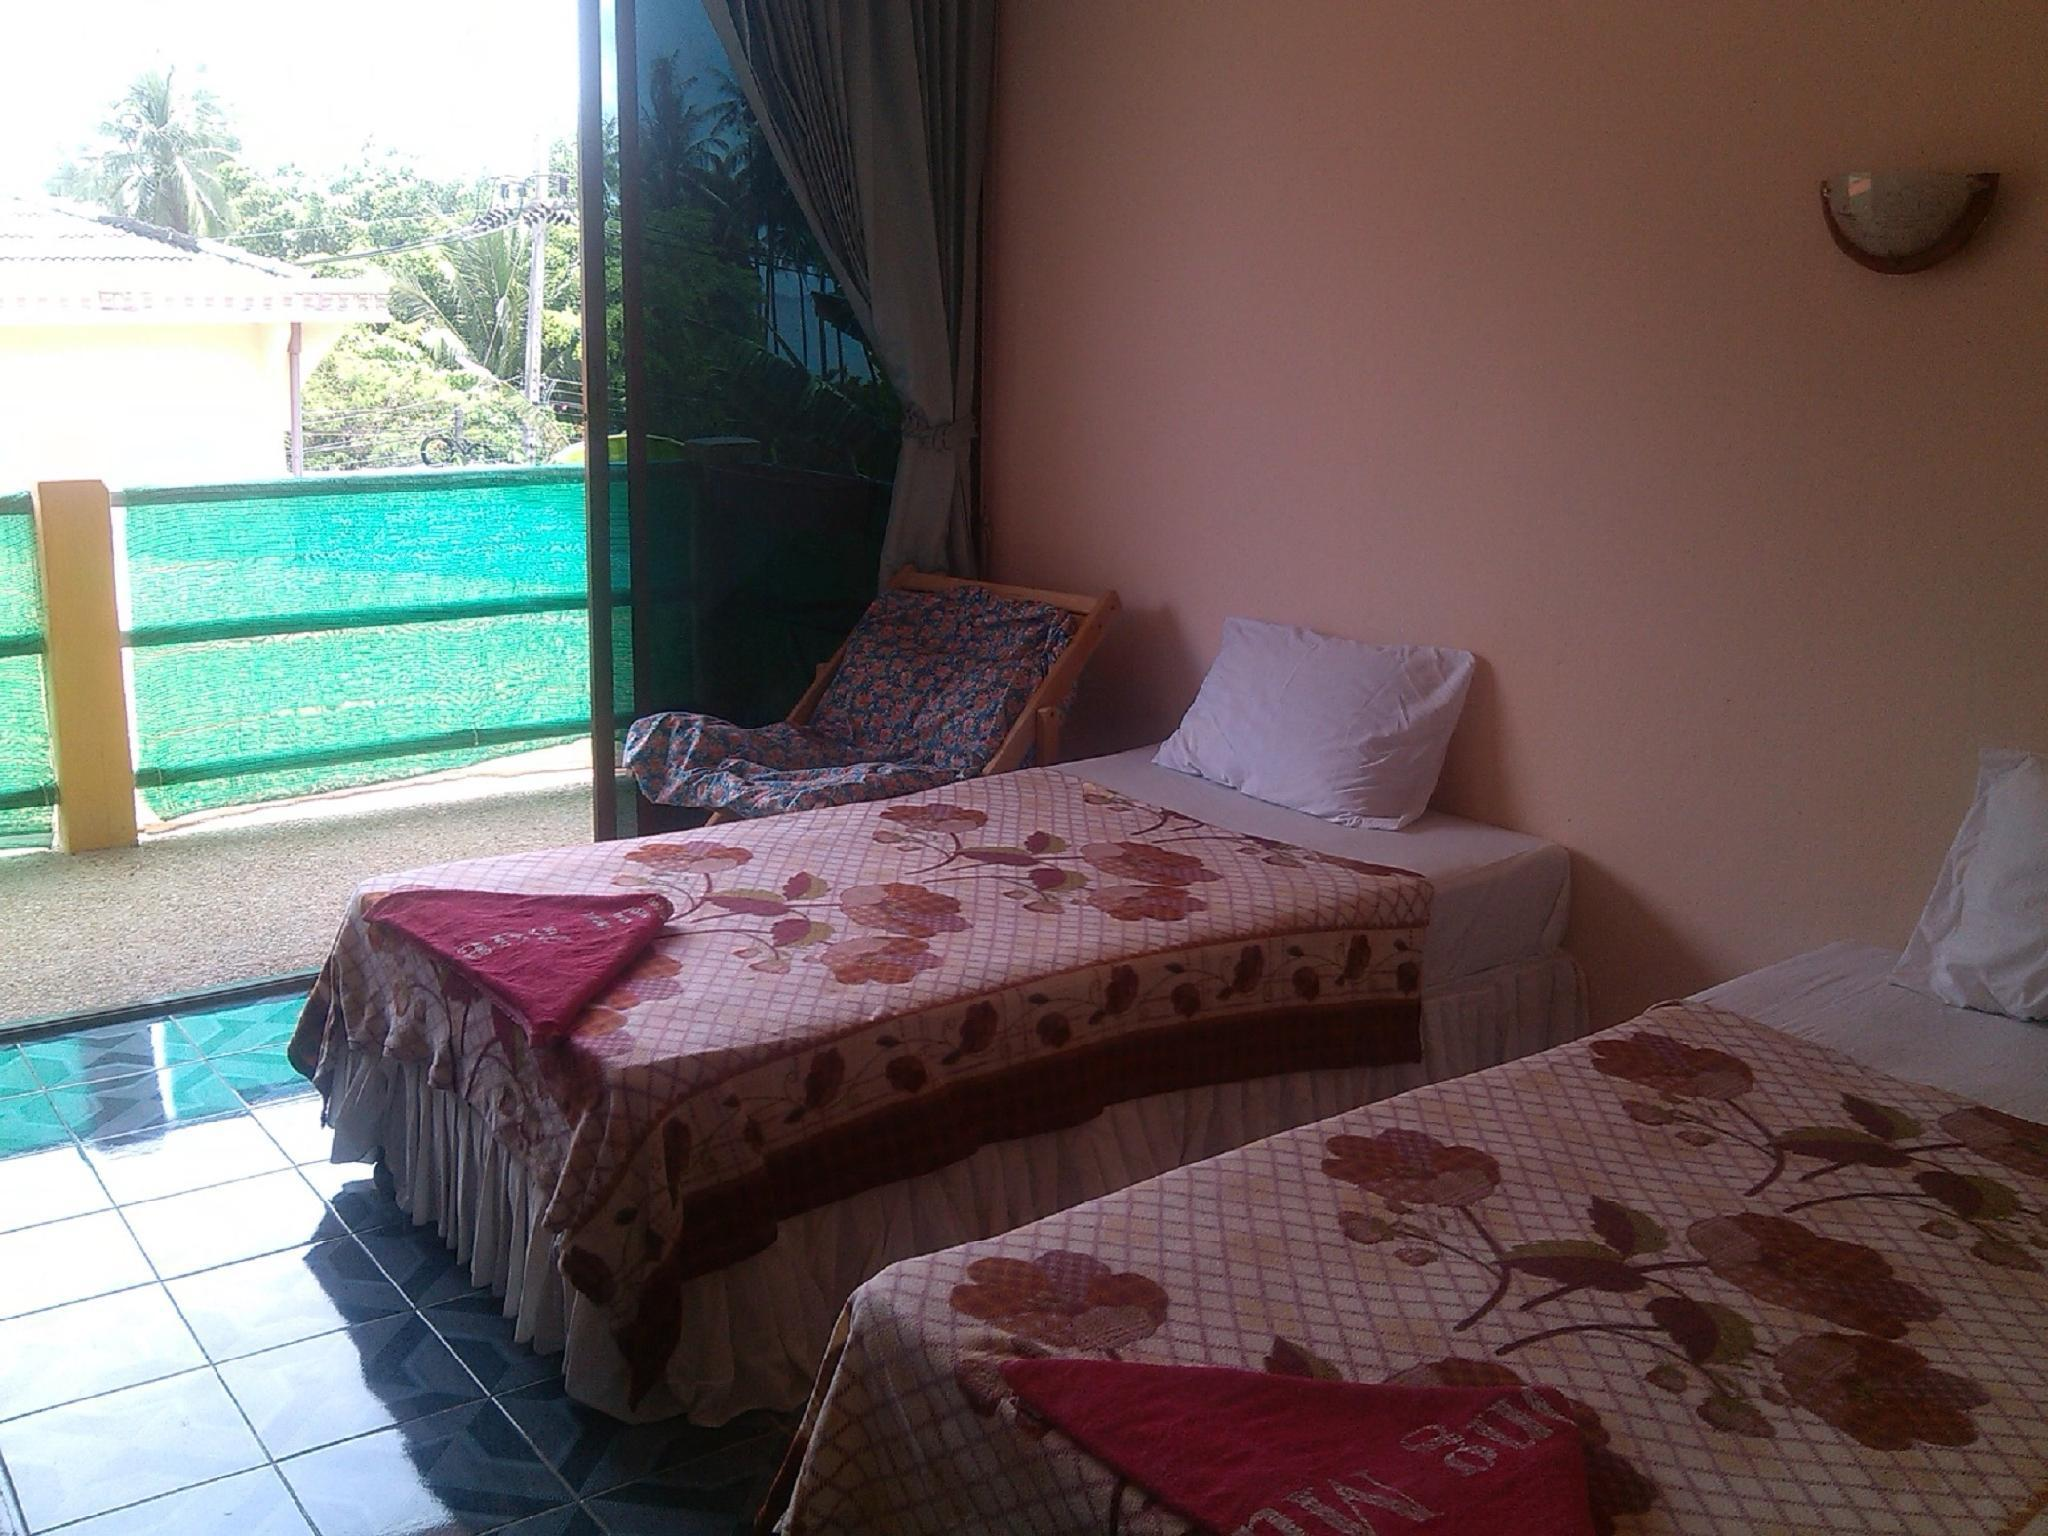 Visit Our Guestouse For A Relaxing Time Visit Our Guestouse For A Relaxing Time